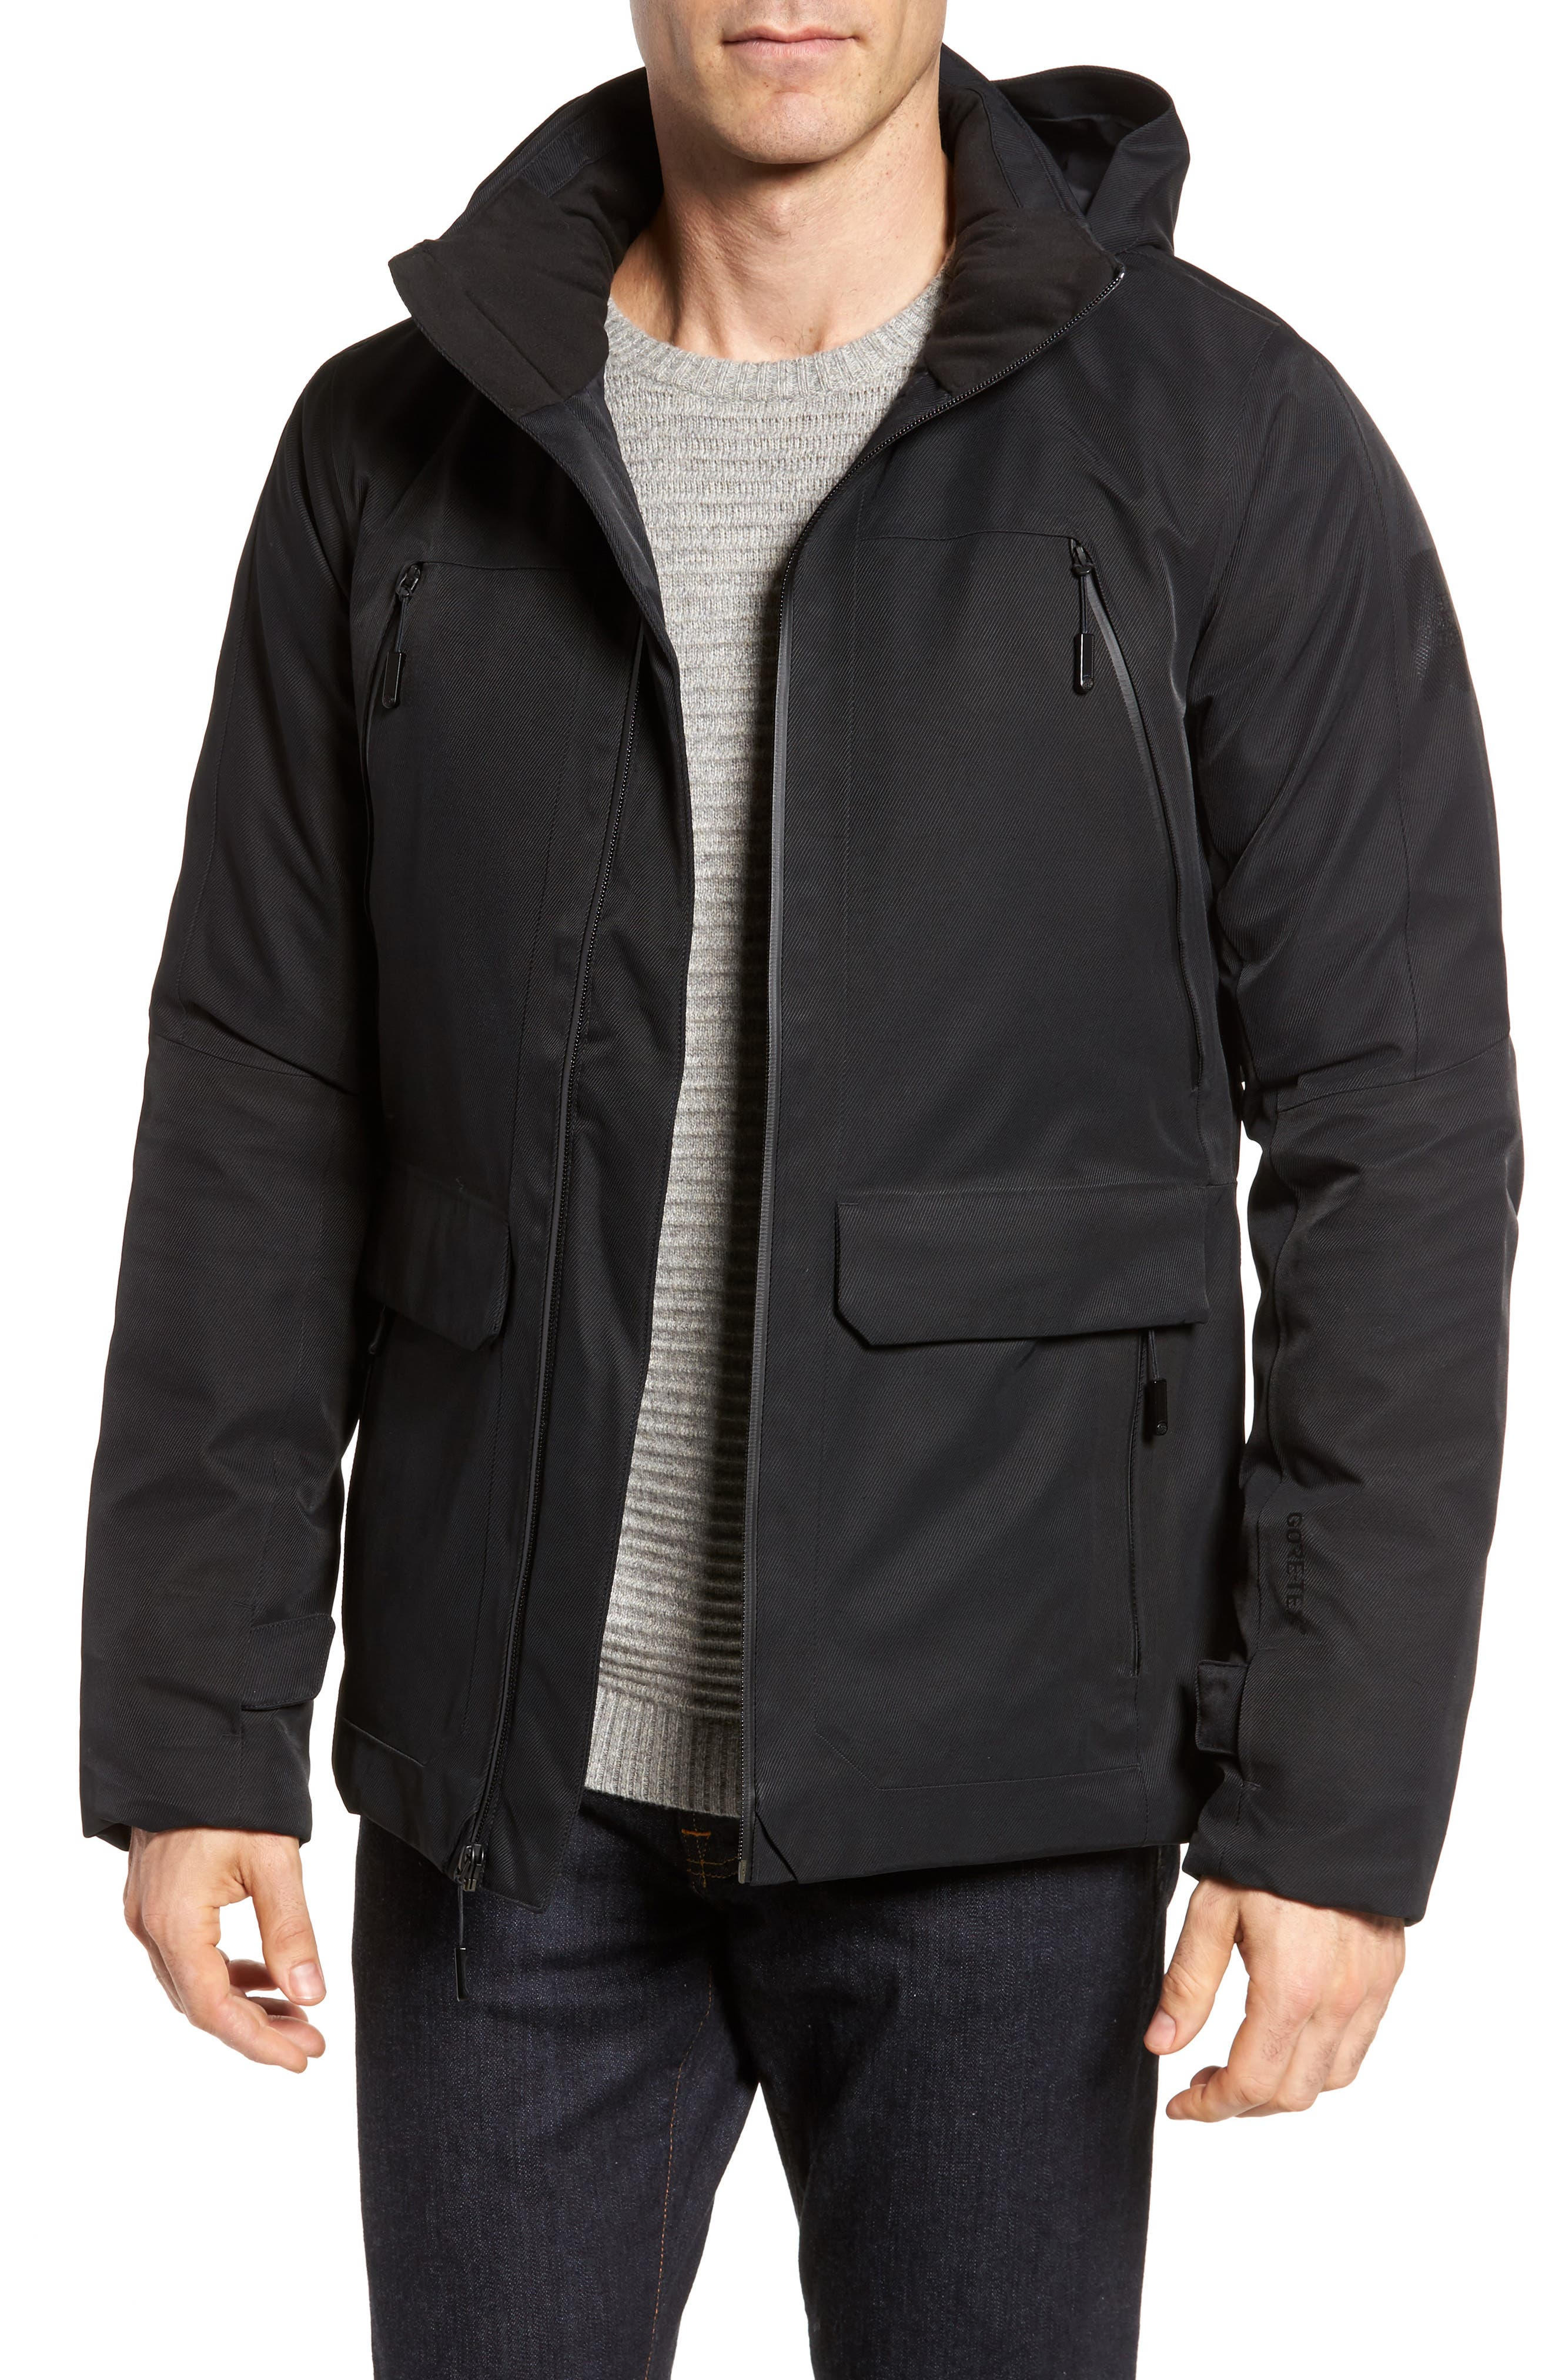 Cryos Waterproof Gore-Tex<sup>®</sup> PrimaLoft<sup>®</sup> Gold Insulated Jacket,                         Main,                         color,